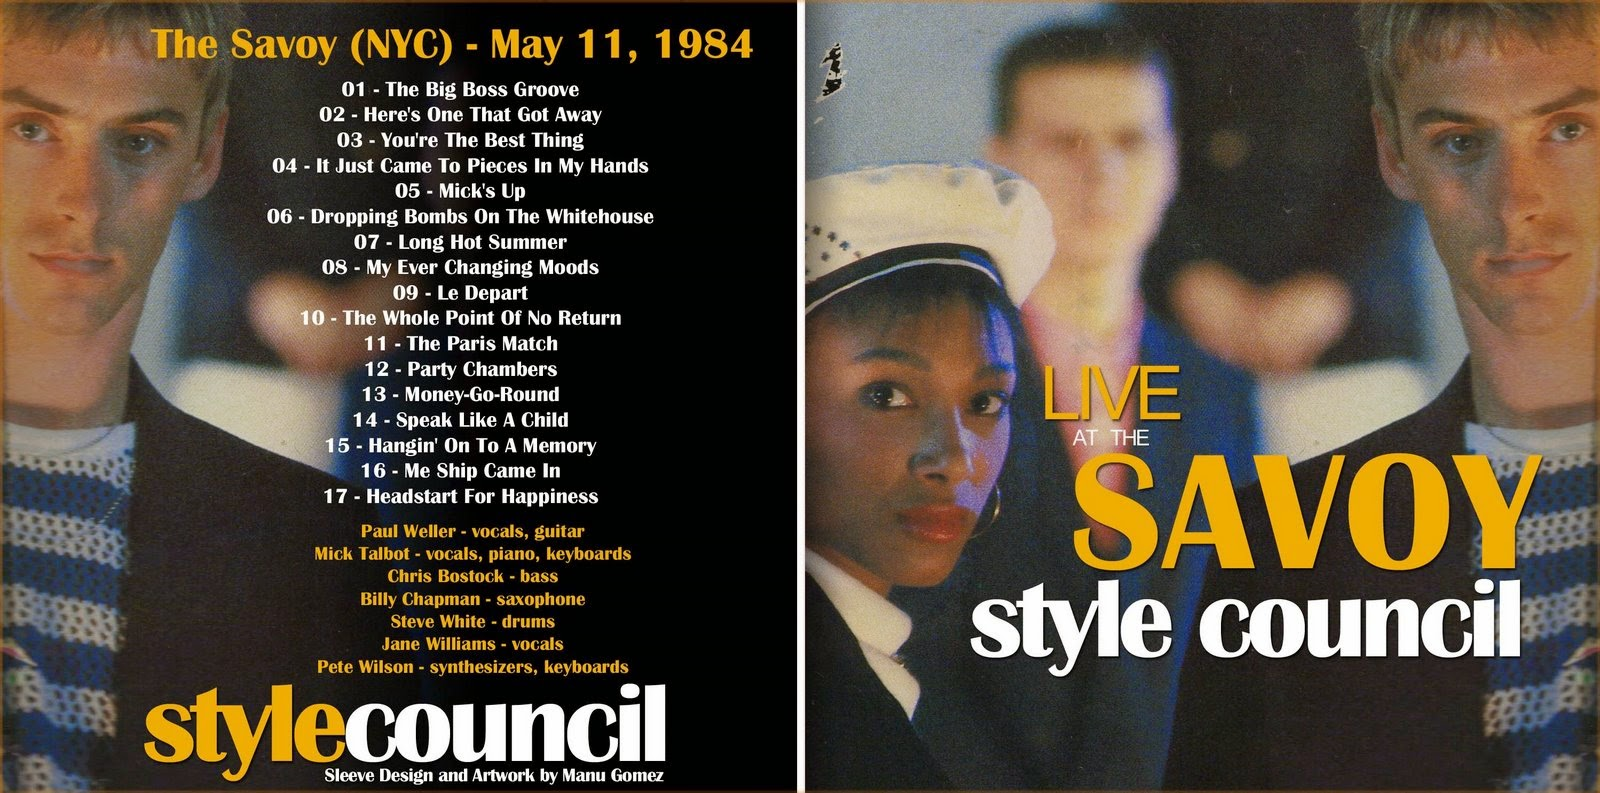 The Style Council My Ever Changing Moods